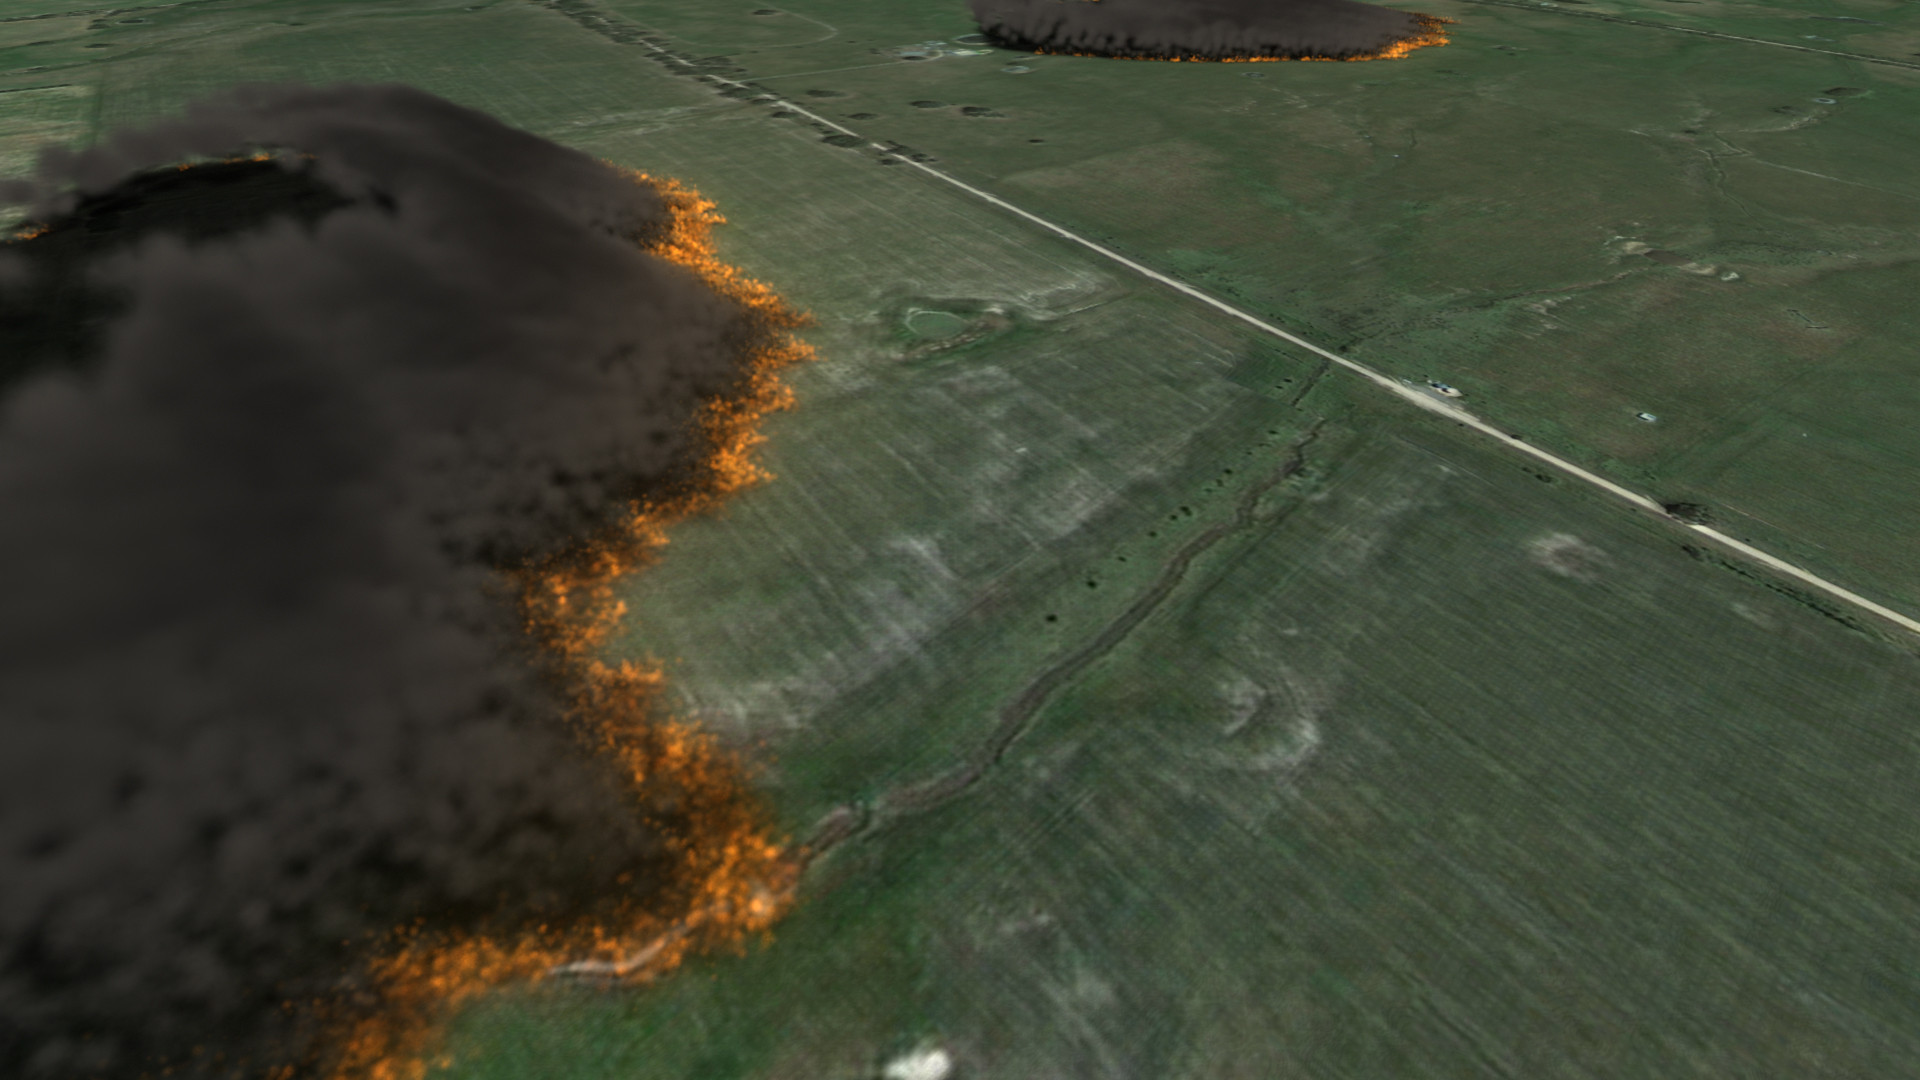 Visualisation of a bushfire spread simulation using SPARK software developed using the Workspace workflow engine